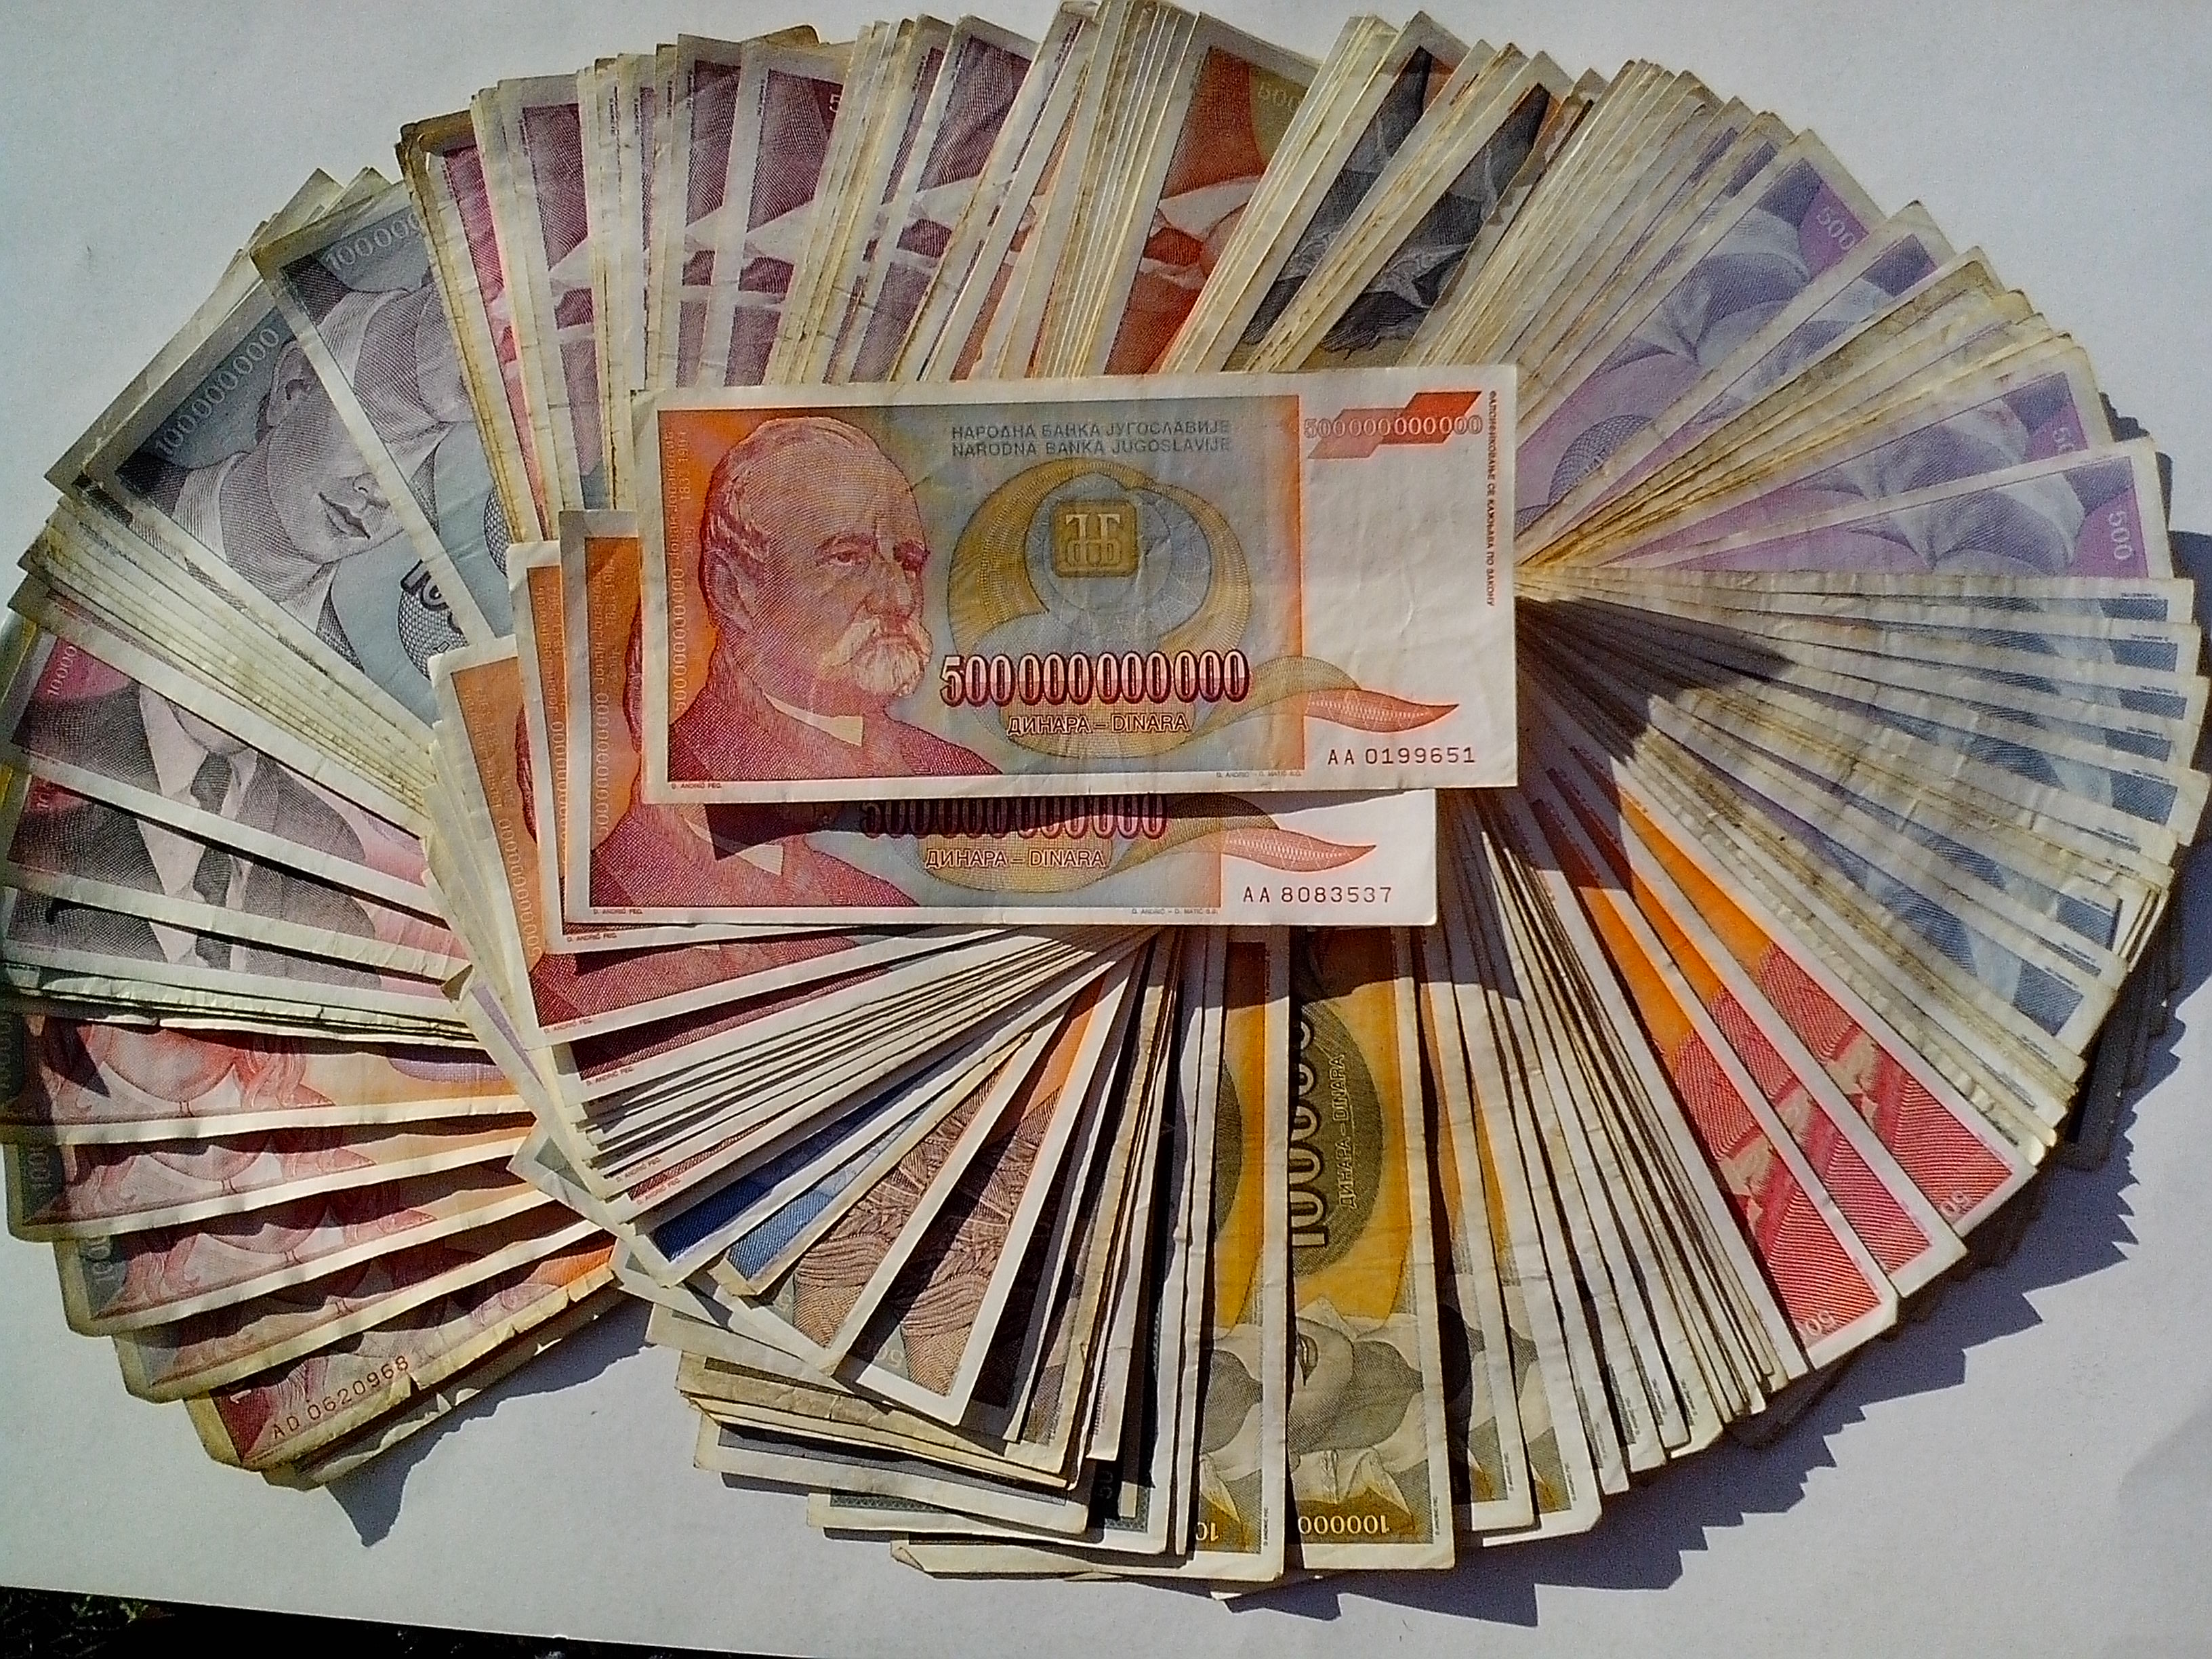 Free photograph; money, big, banknotes, great, inflation, 500000000000, bill